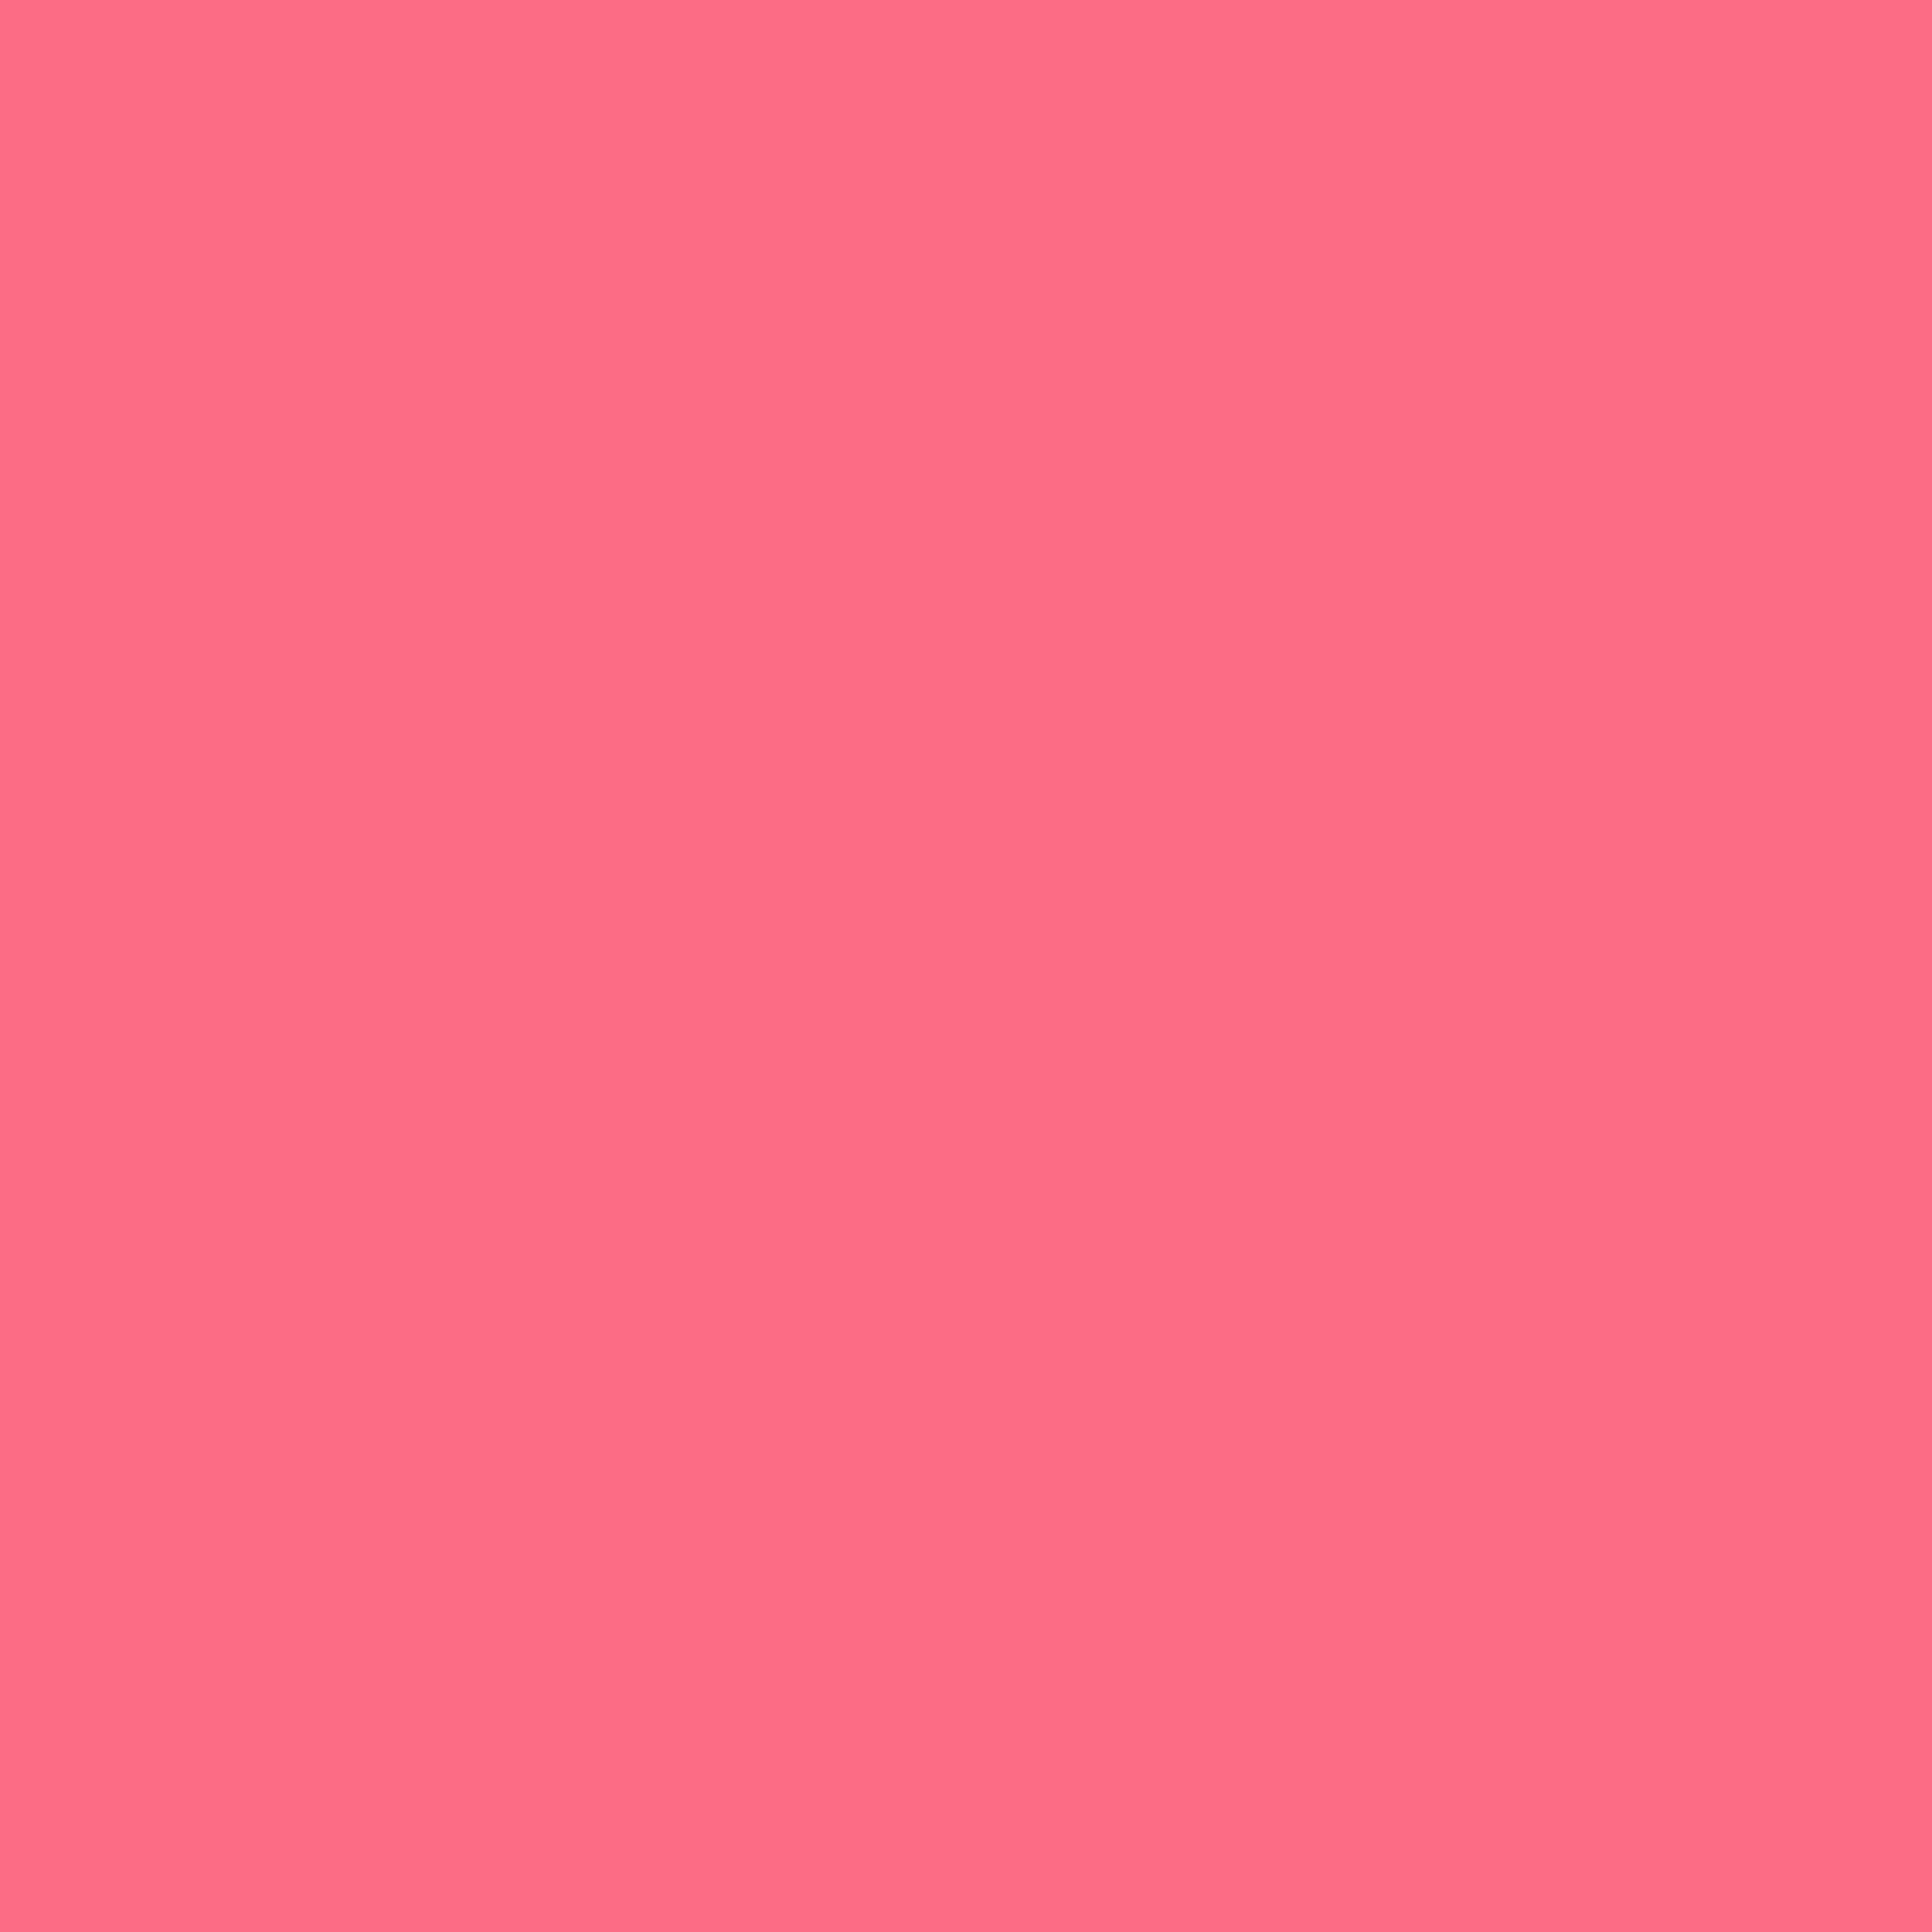 2048x2048 Wild Watermelon Solid Color Background